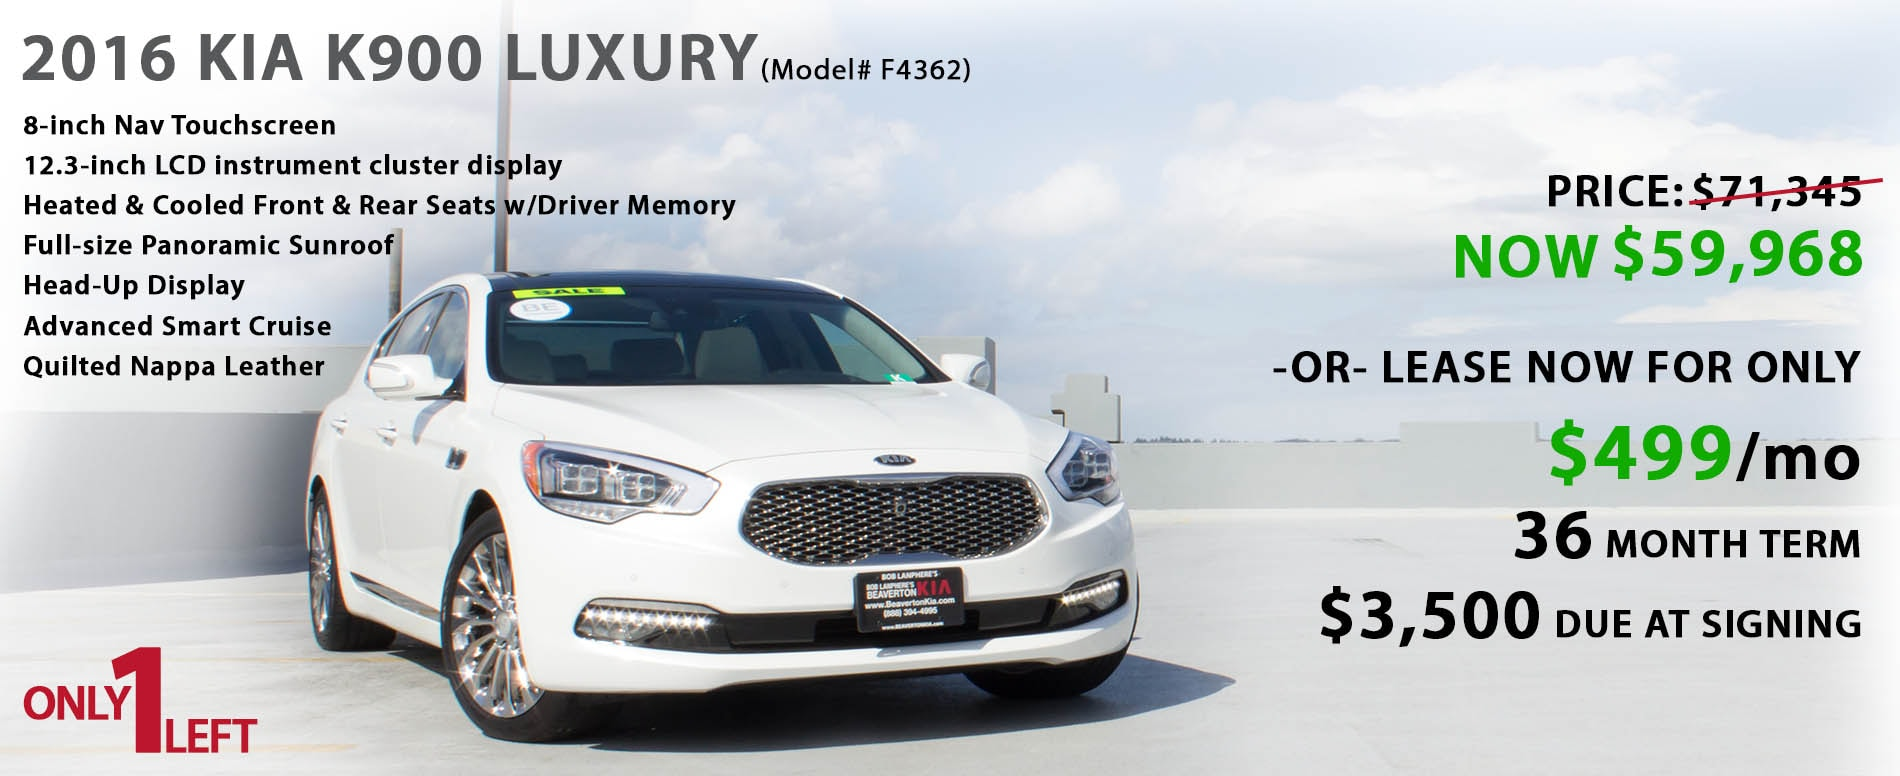 Last one available! Purchase a new fully loaded 2016 K900 for $59,968 or Lease for just $499 per month with $3,500 due at signing.